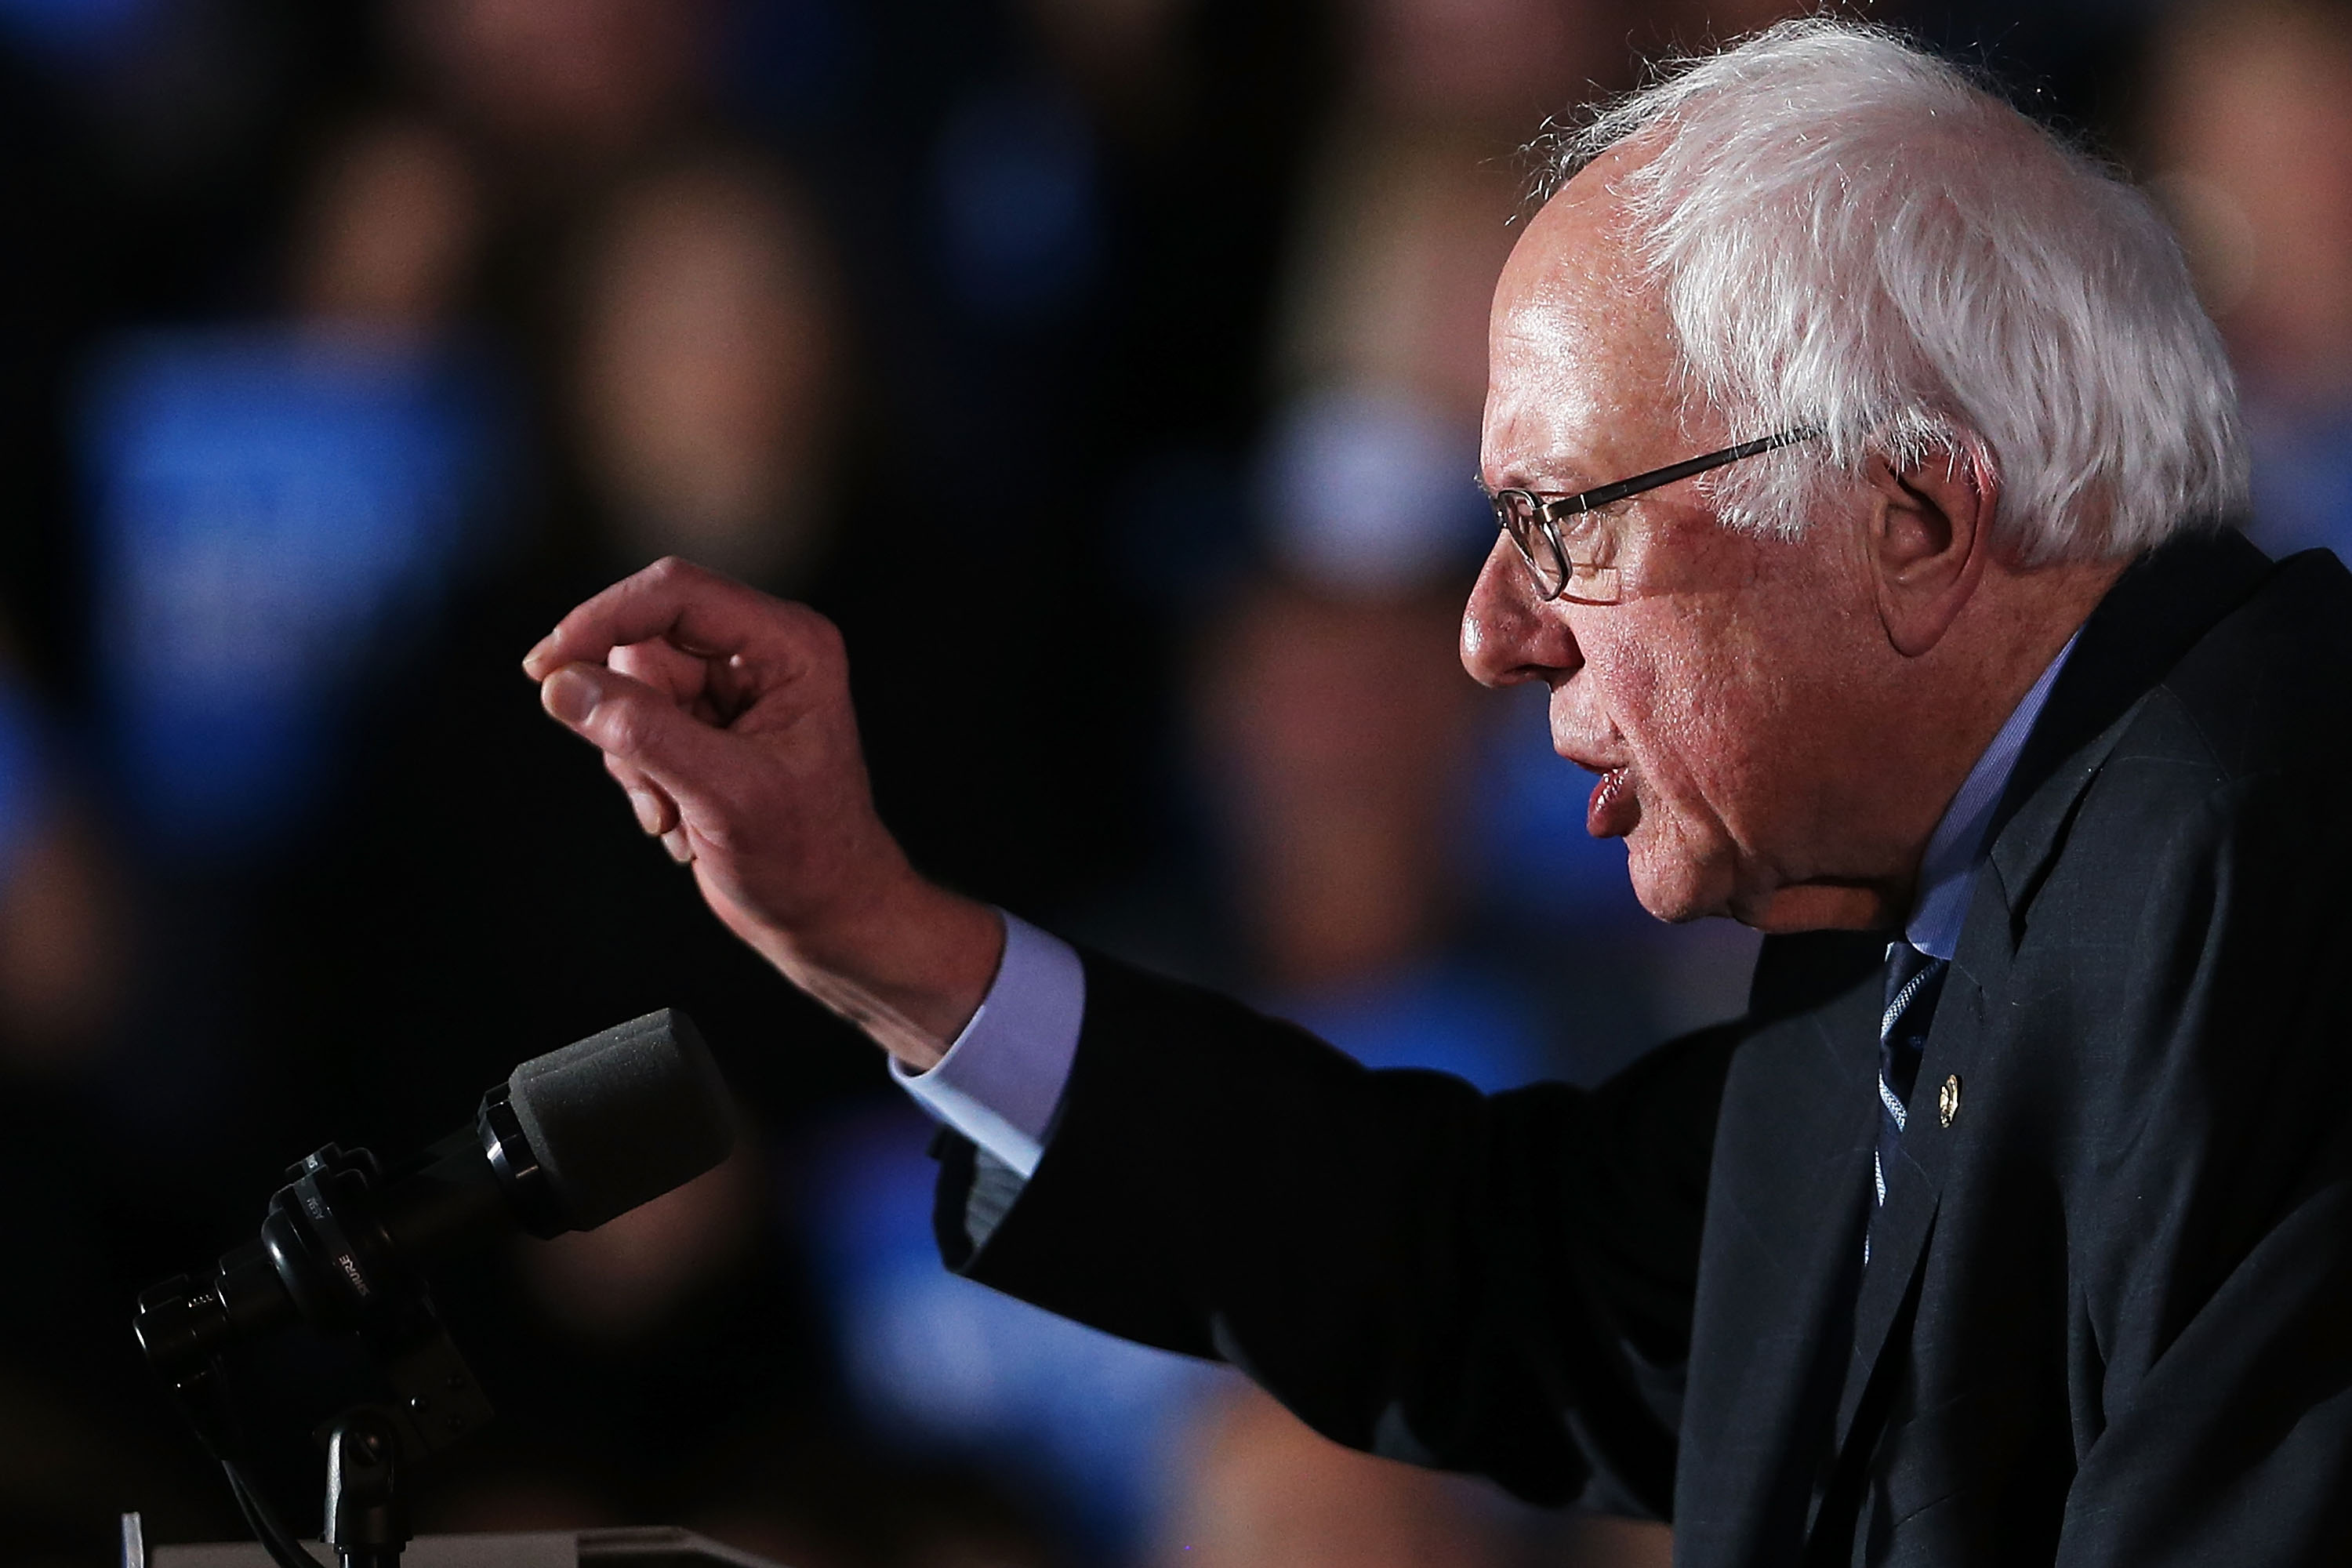 Sen. Bernie Sanders (D-VT) speaks onstage after declaring victory over Hillary Clinton in the New Hampshire on February 9.